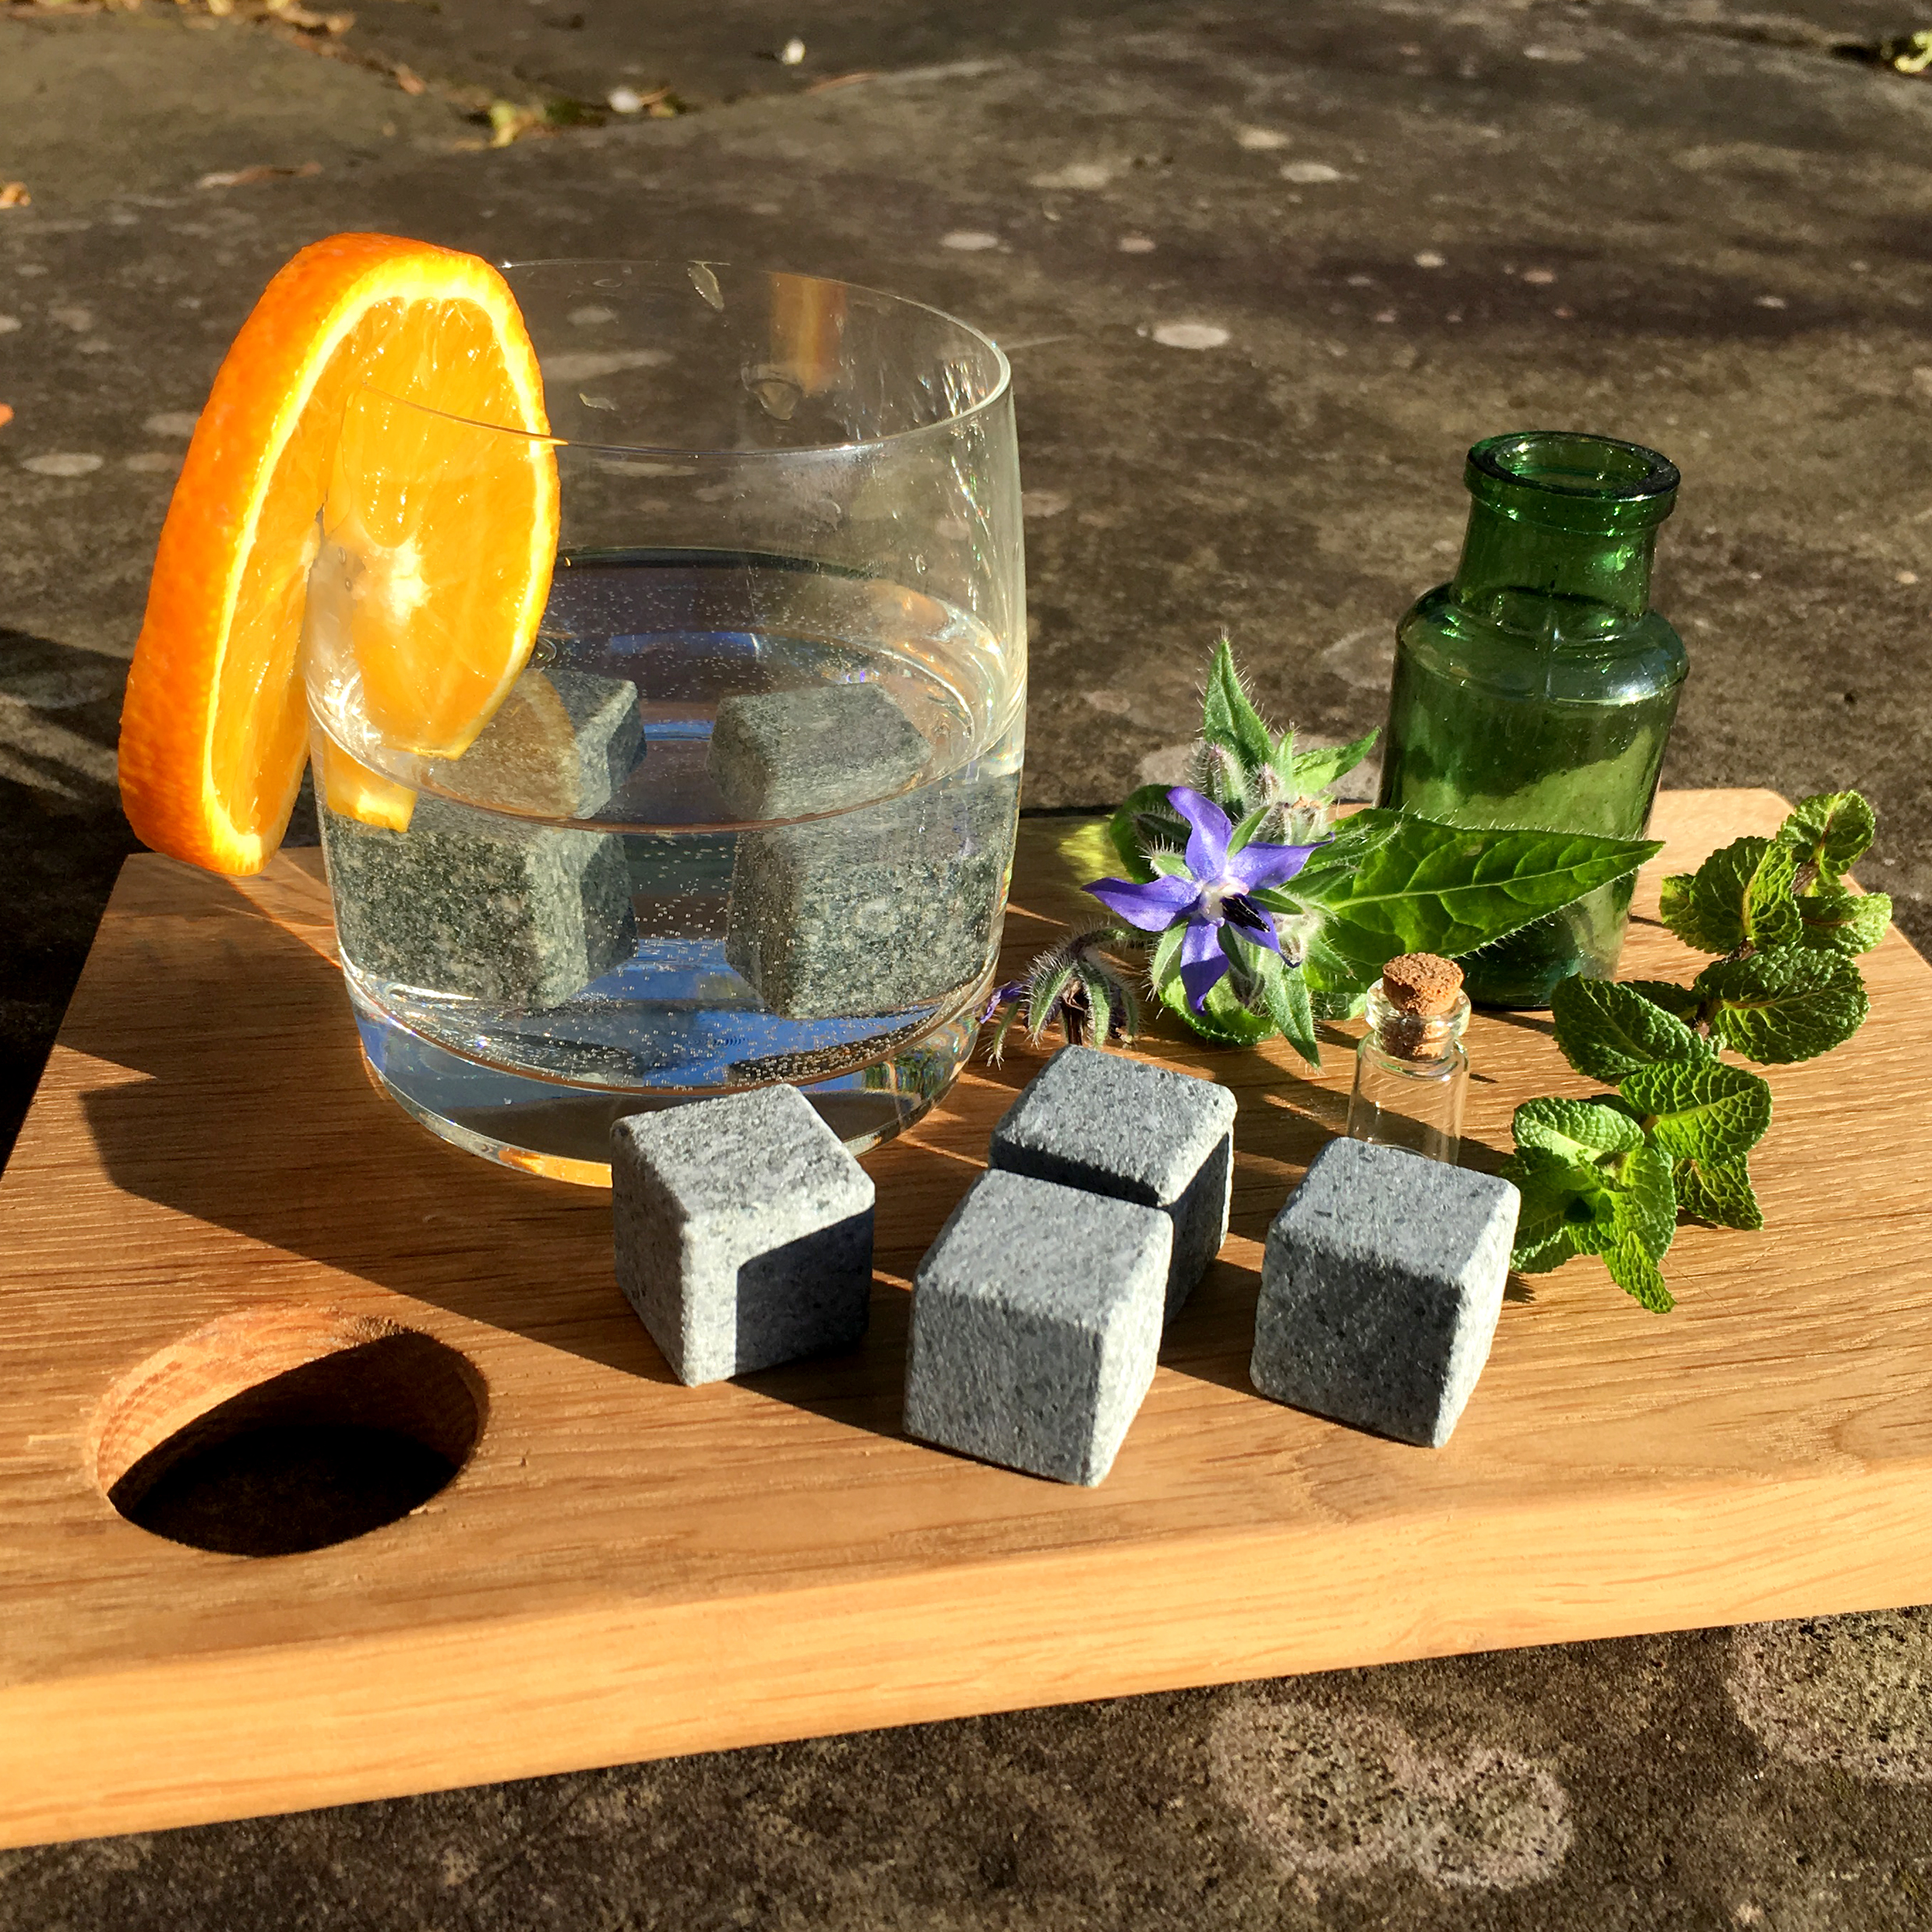 Modern Stone Age gin and whisky stones